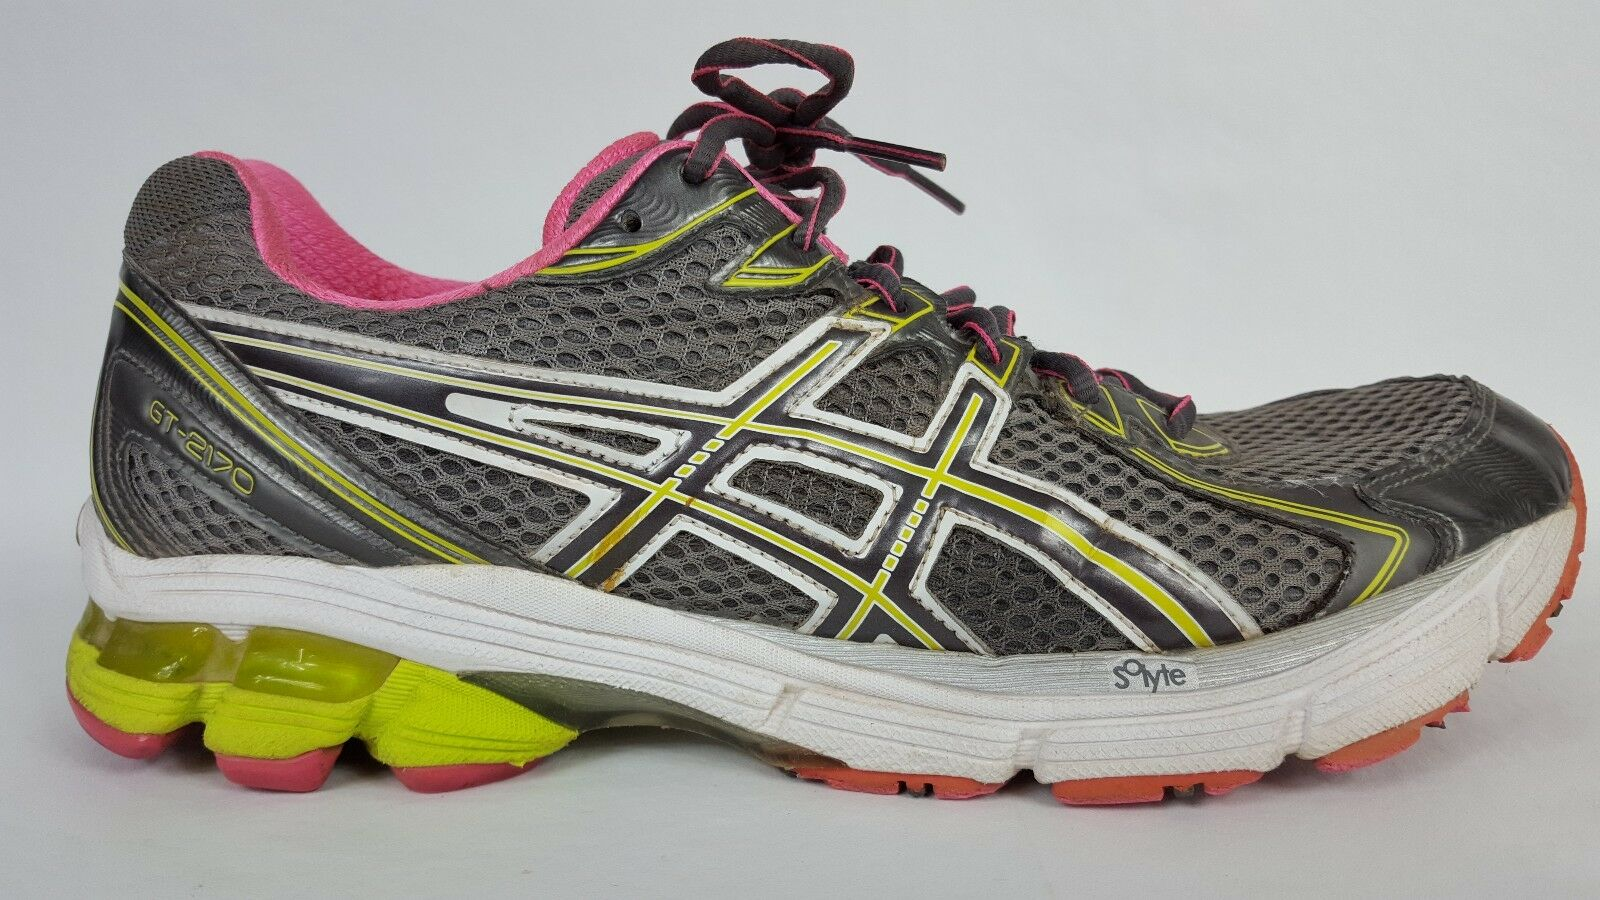 Women's ASICS GT 2170 Grey Pink Yellow Green Running Shoe Comfortable Wild casual shoes